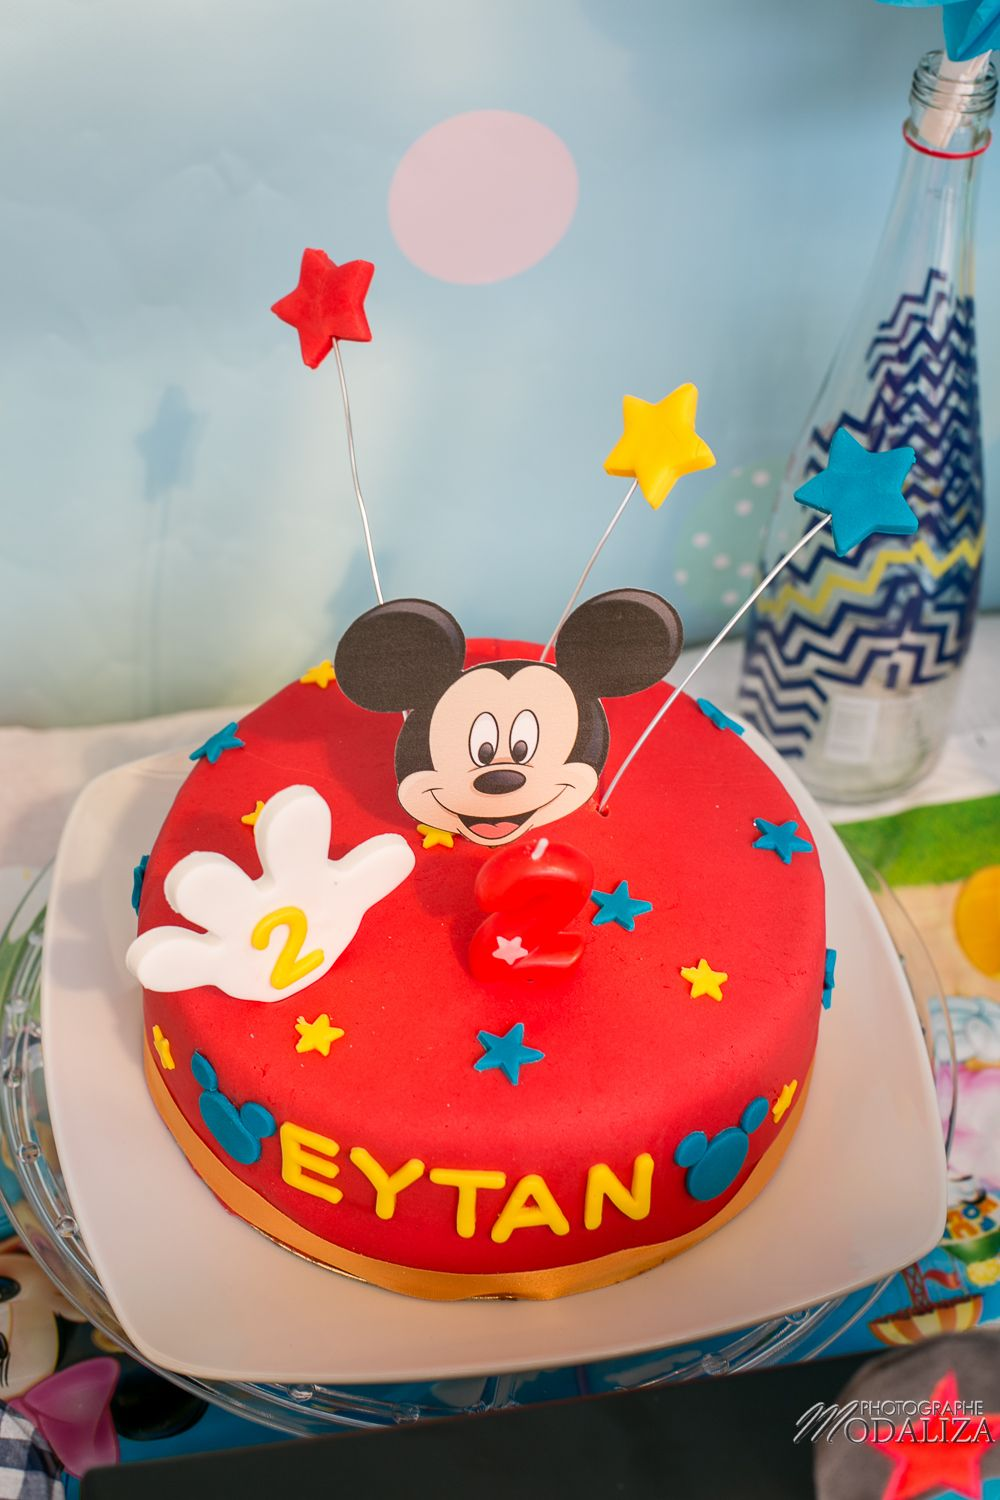 photographe maman blogueuse anniversaire mickey birthday 2 ans ... on